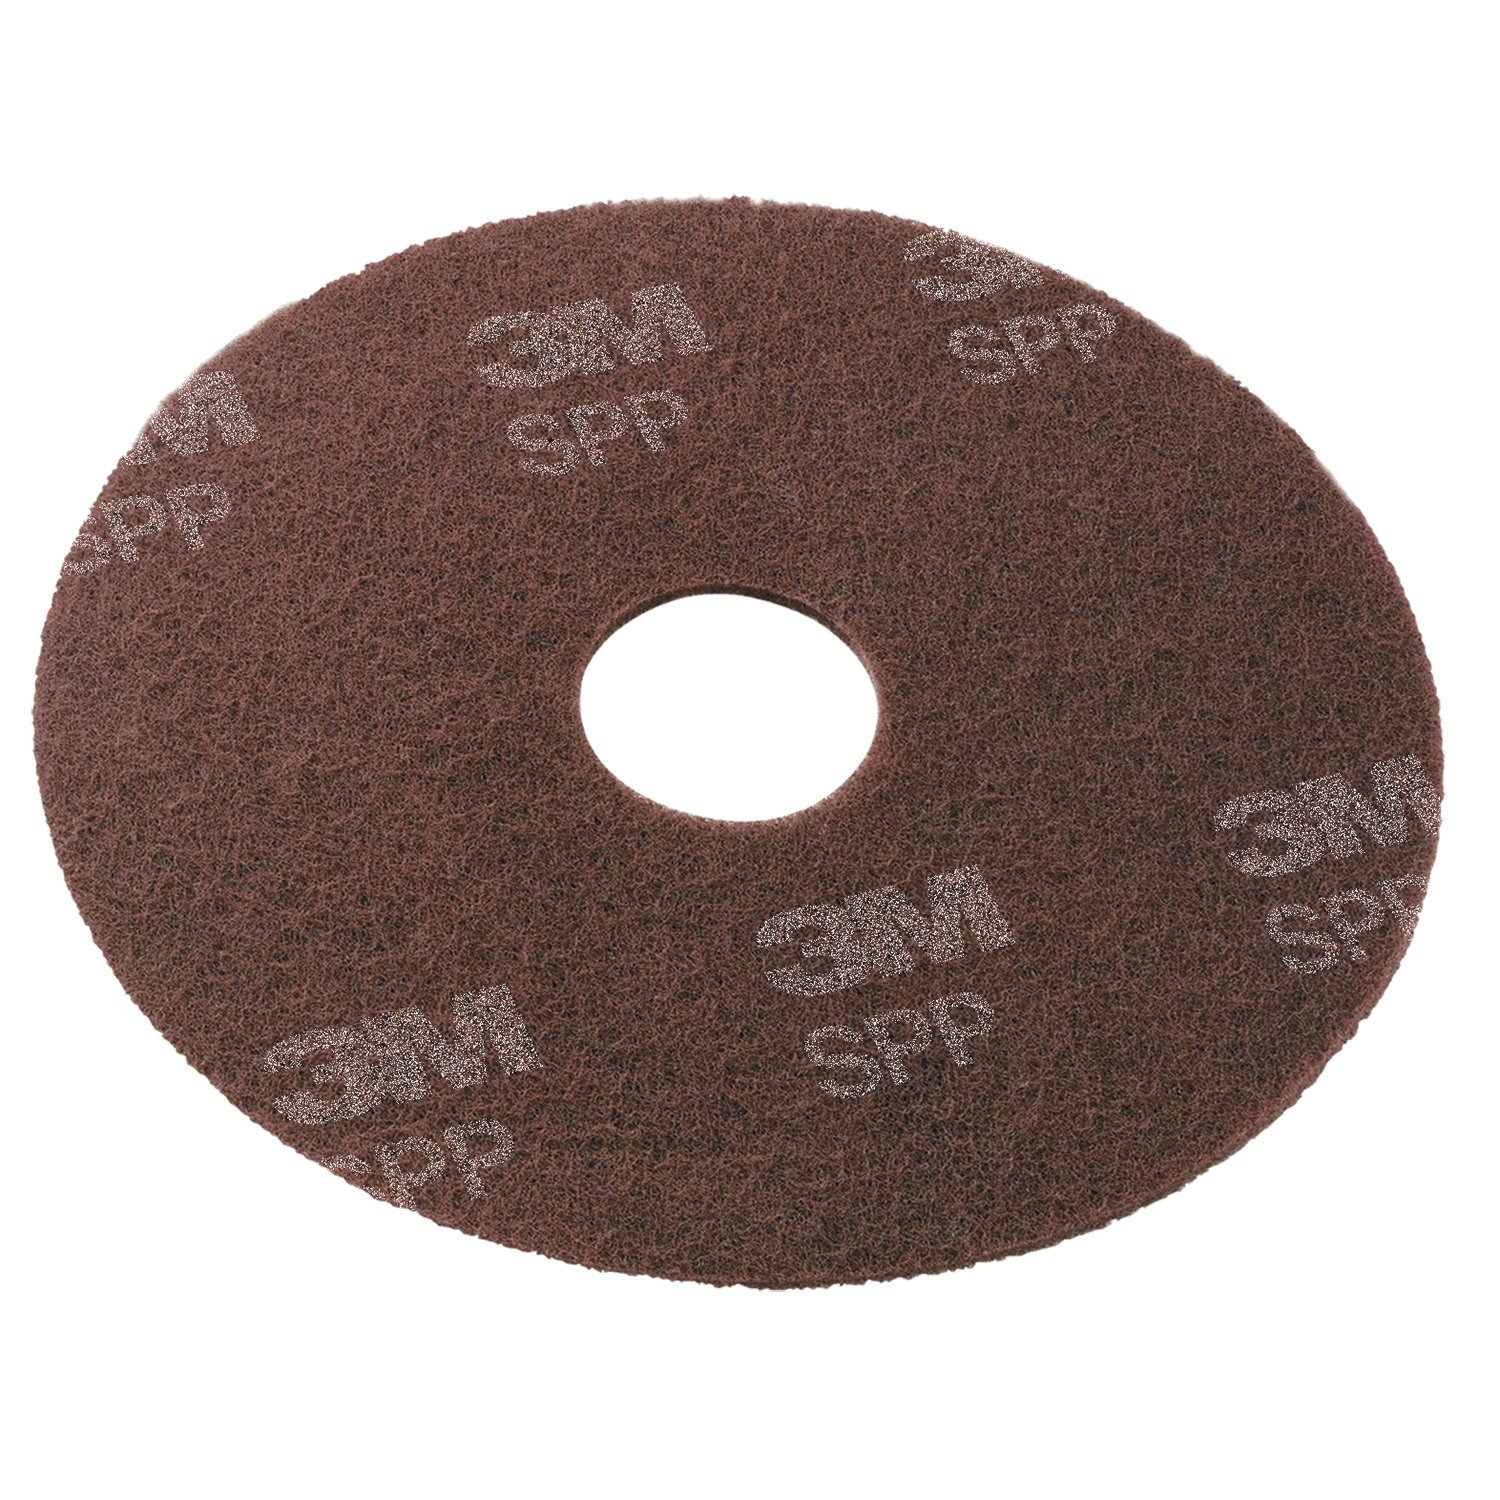 Scotch-Brite Surface Preparation Pad SPP8, 8'' (Case of 25)